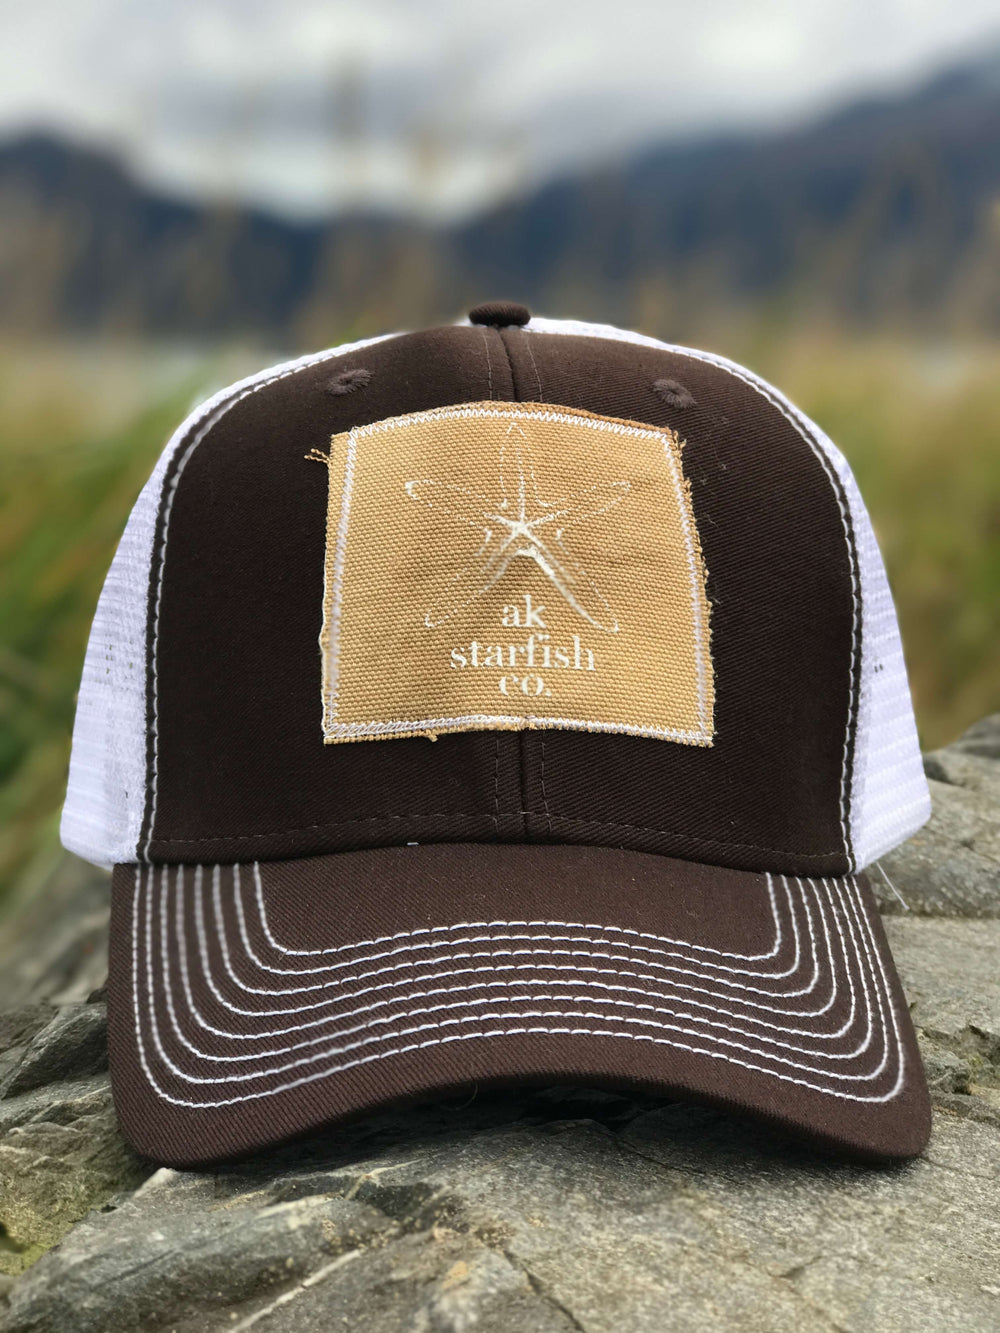 Deer AK Starfish Co. Patch Hat 35.00